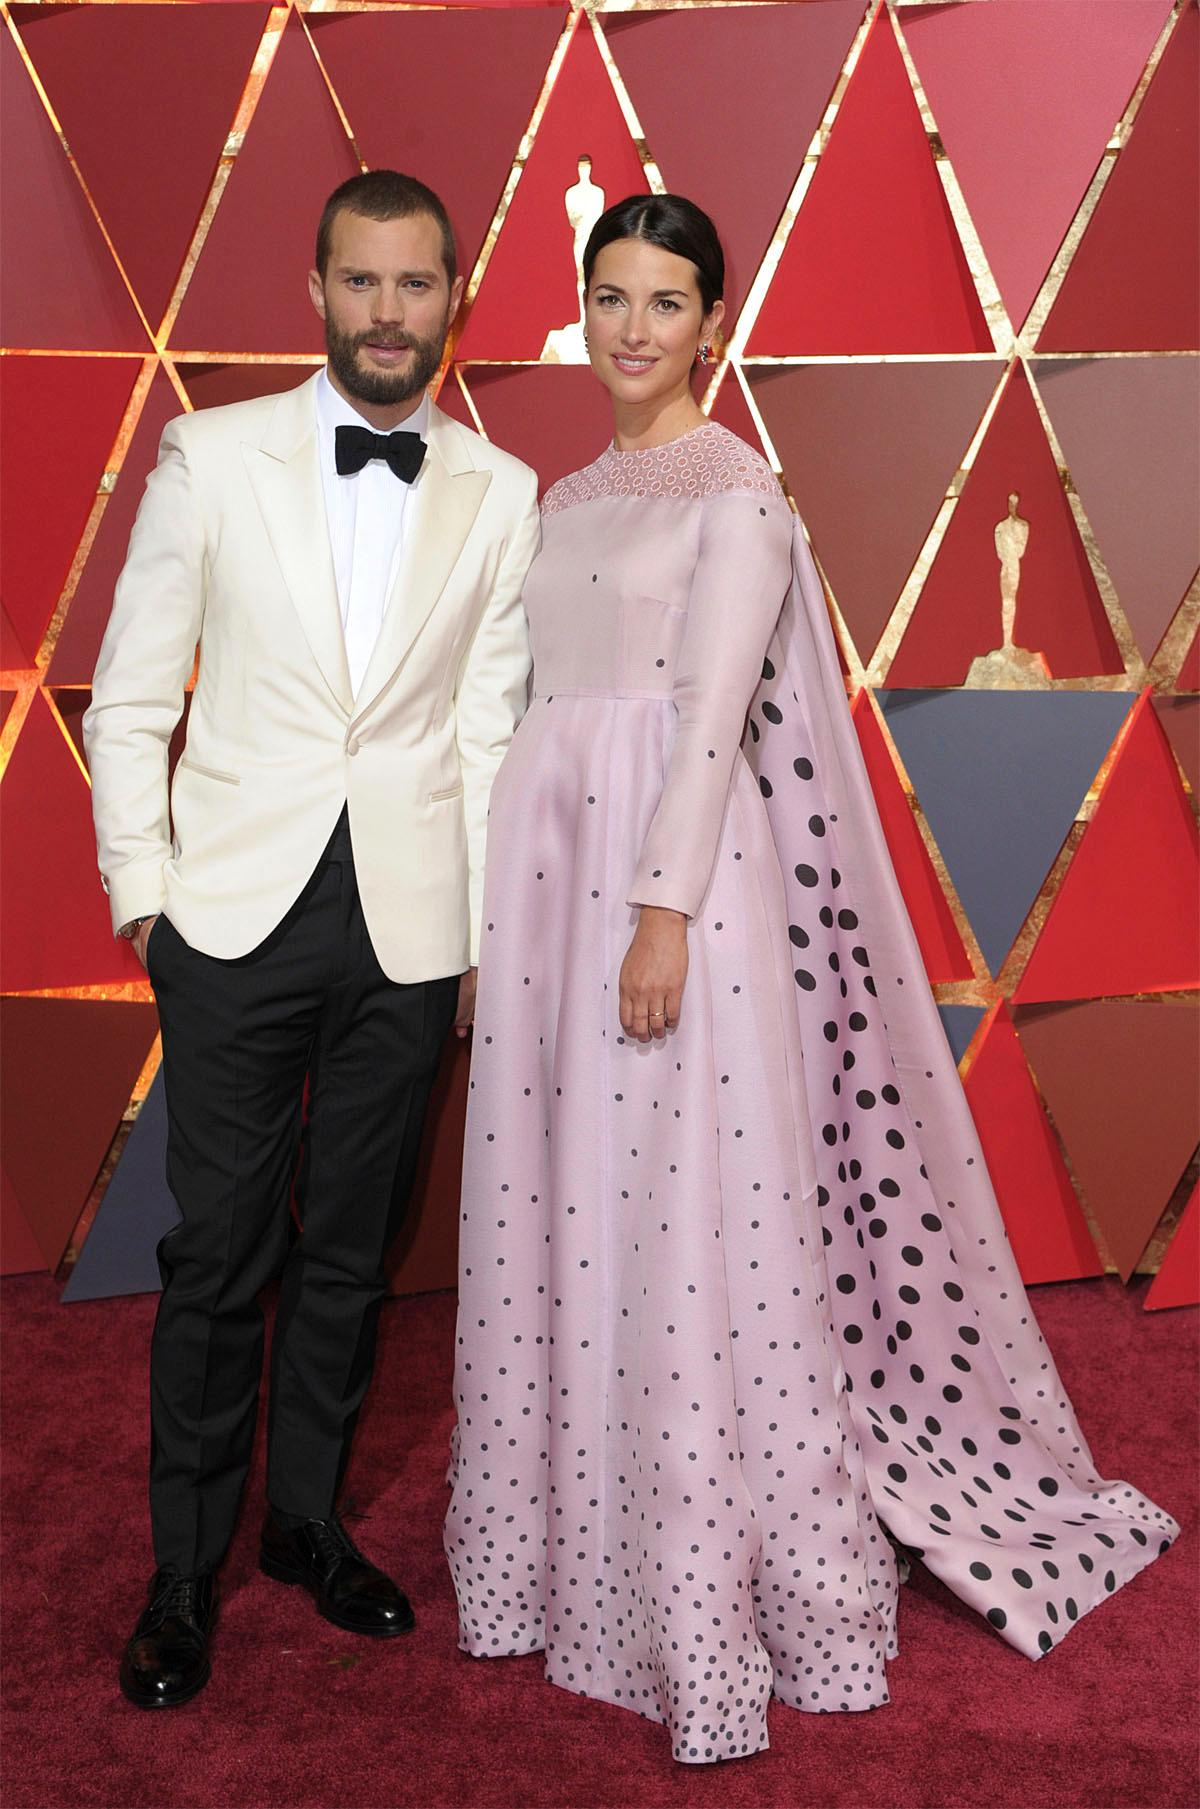 Jamie Dornan, left, and Amelia Warner arrive at the Oscars on Sunday, Feb. 26, 2017, at the Dolby Theatre in Los Angeles. (Photo by Richard Shotwell/Invision/AP)